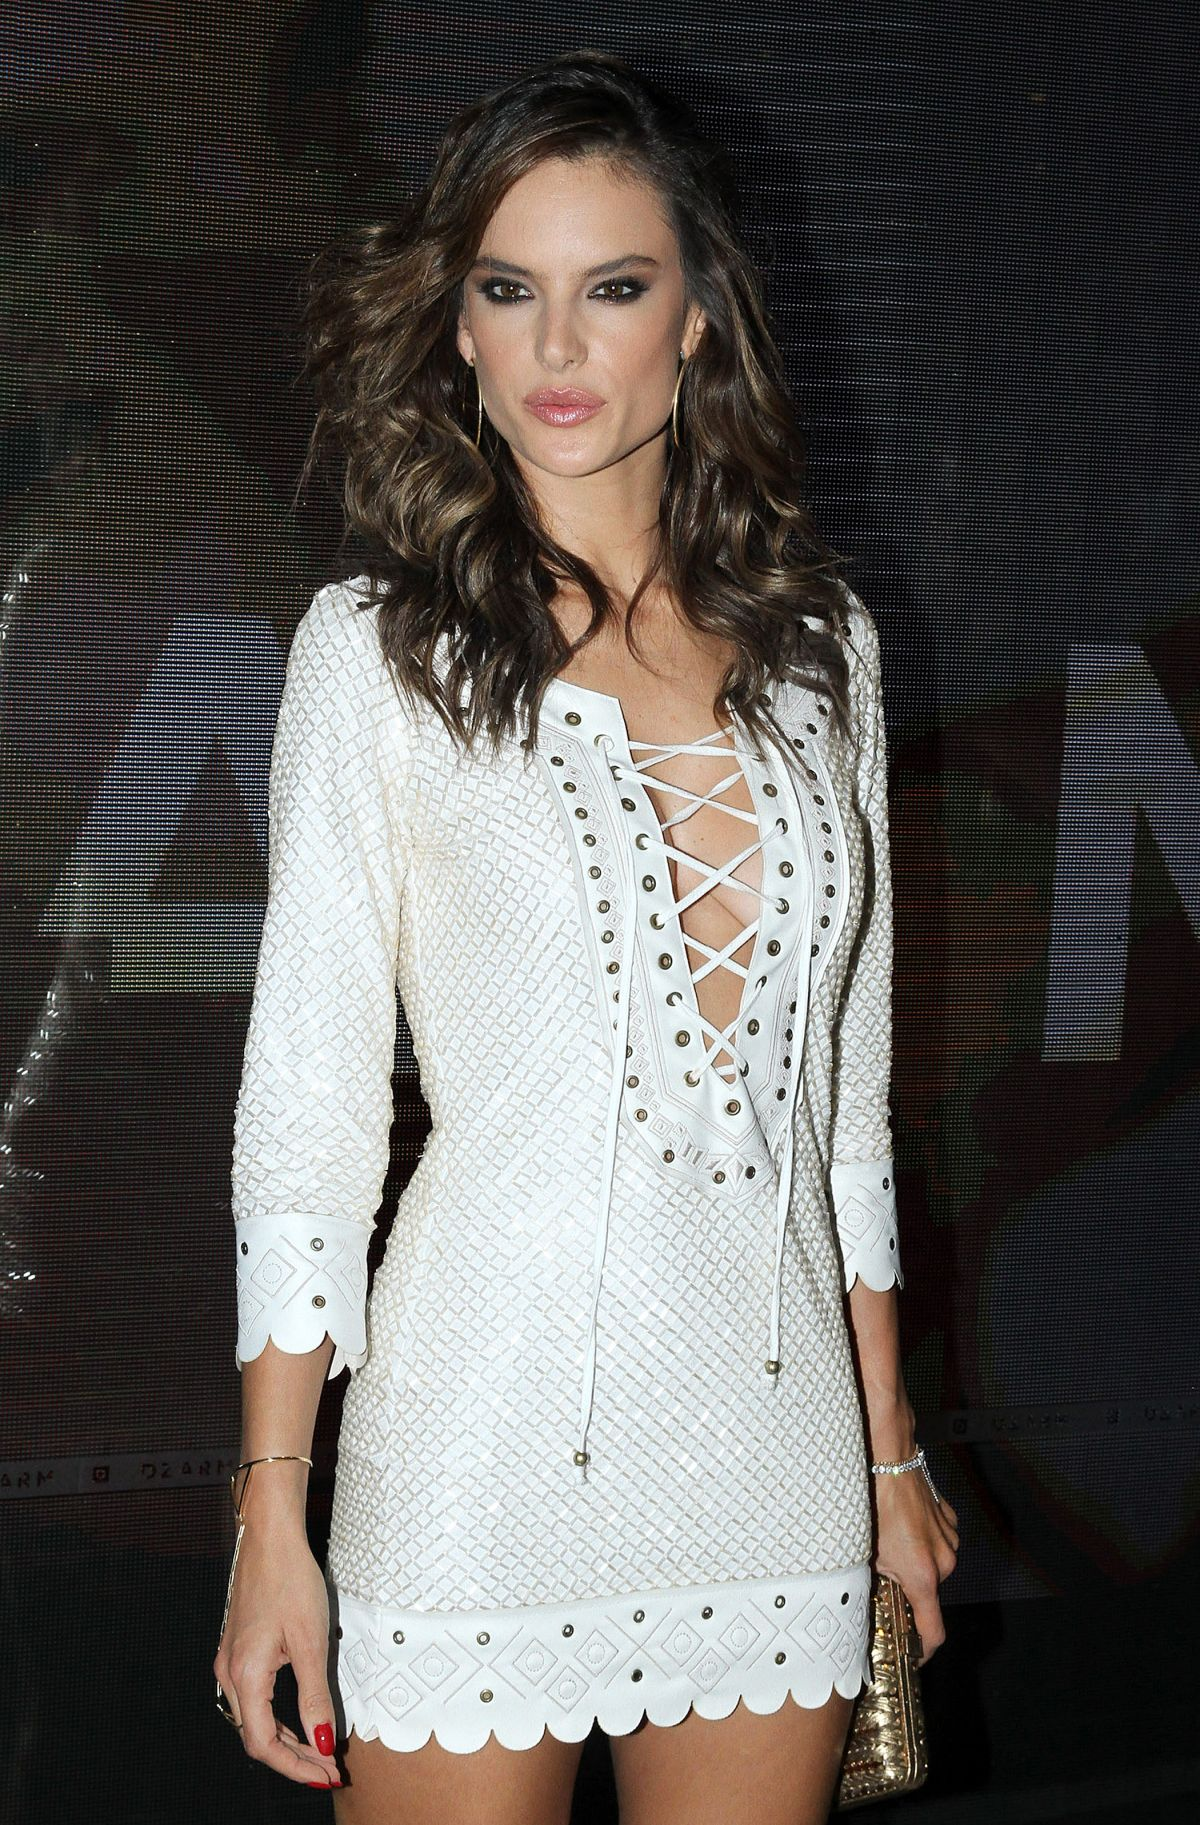 Alessandra Ambrosio Archives - Page 33 of 58 - HawtCelebs ... Alessandra Ambrosio